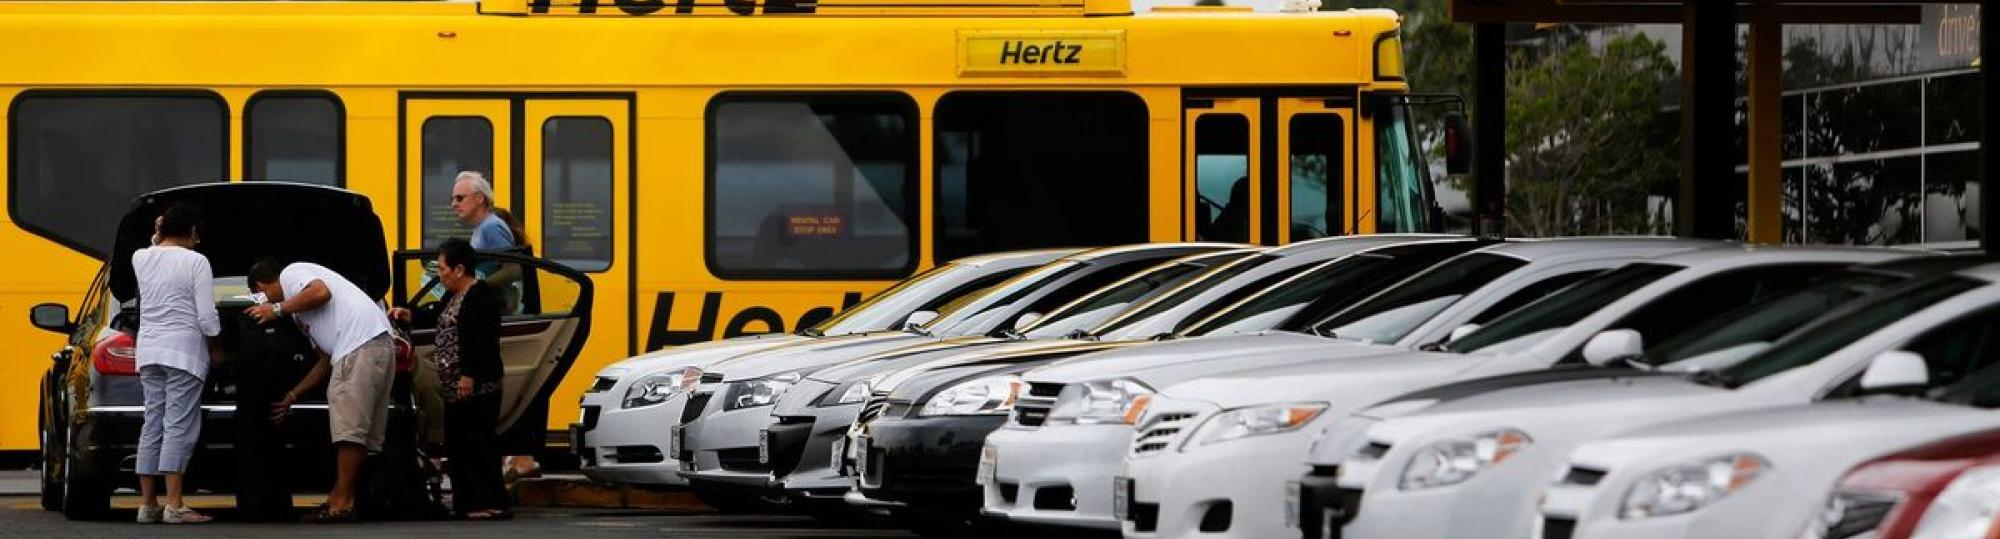 Hertz Military Discount with Veterans Advantage